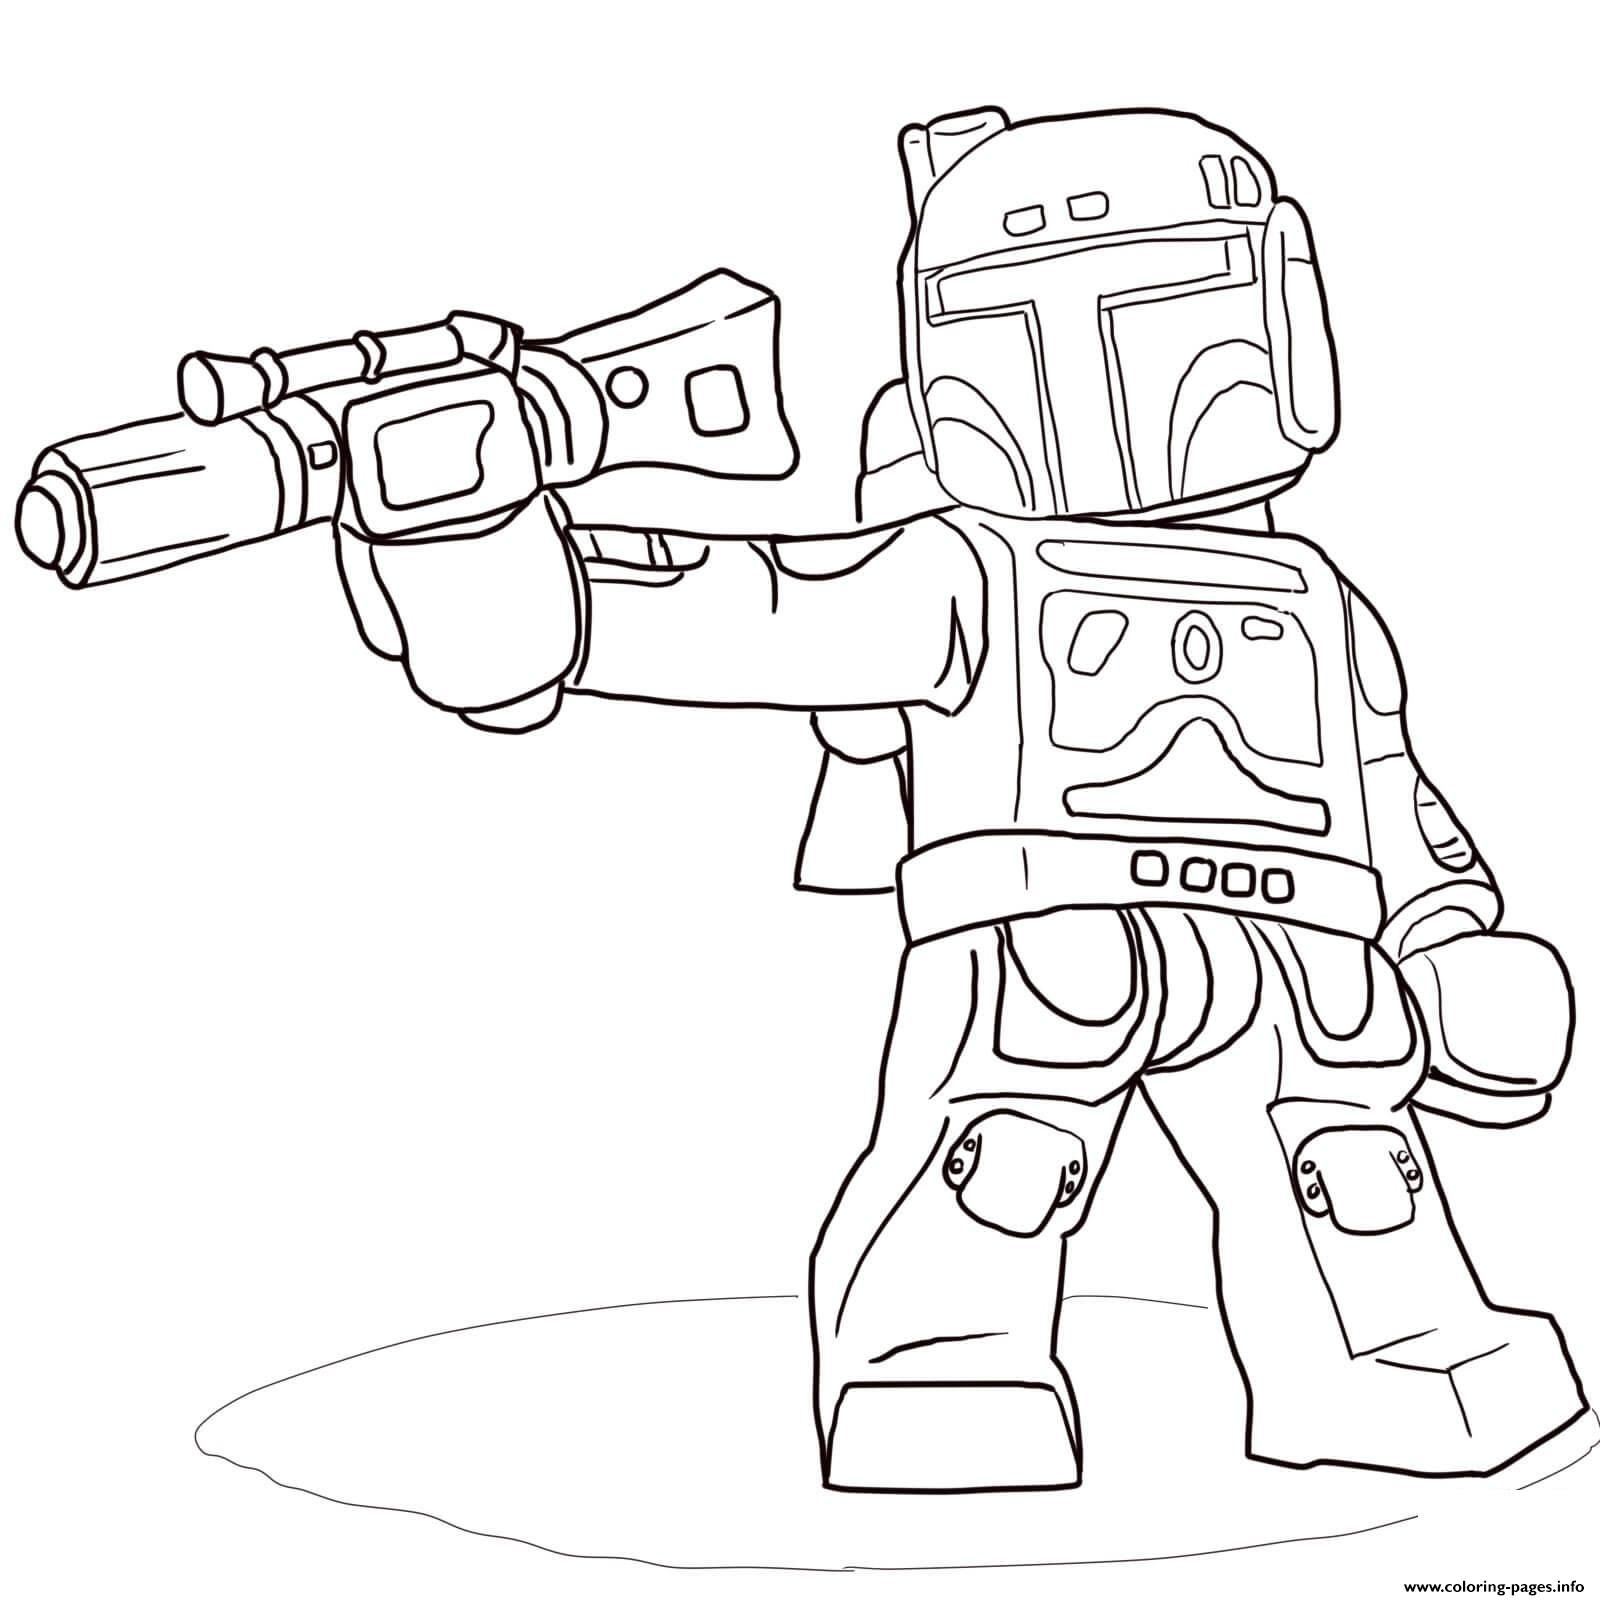 Lego Star Wars Boba Fett Coloring Pages Printable Collection Lego Coloring Pages Star Wars Coloring Sheet Lego Coloring